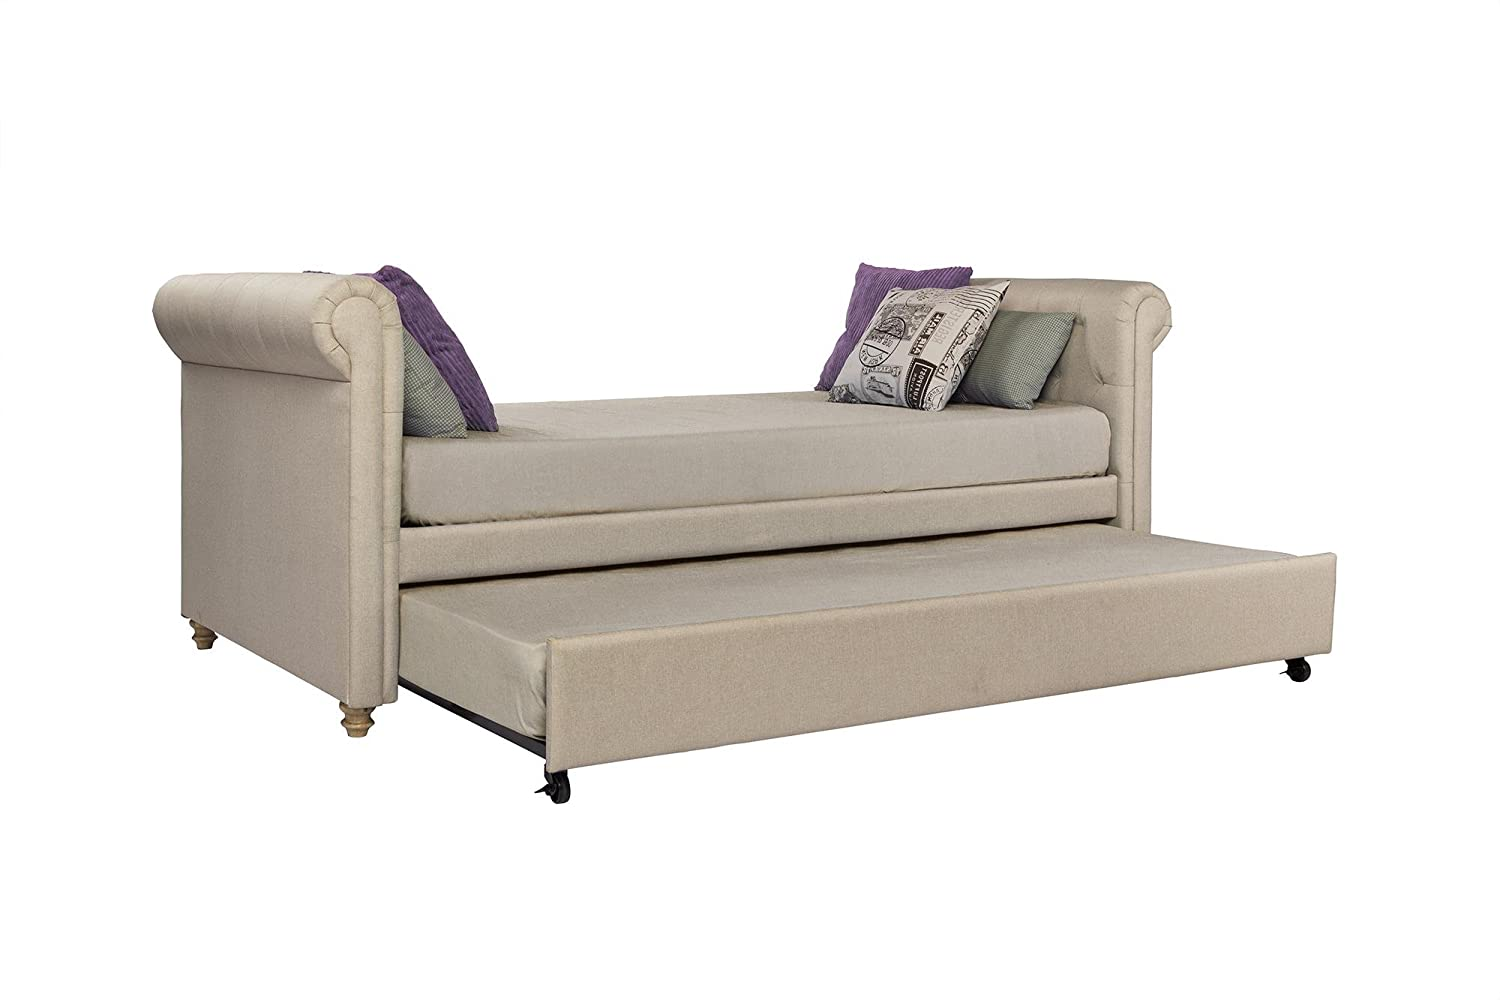 Amazon.com: DHP Sophia Upholstered Daybed and Trundle, Classic ...